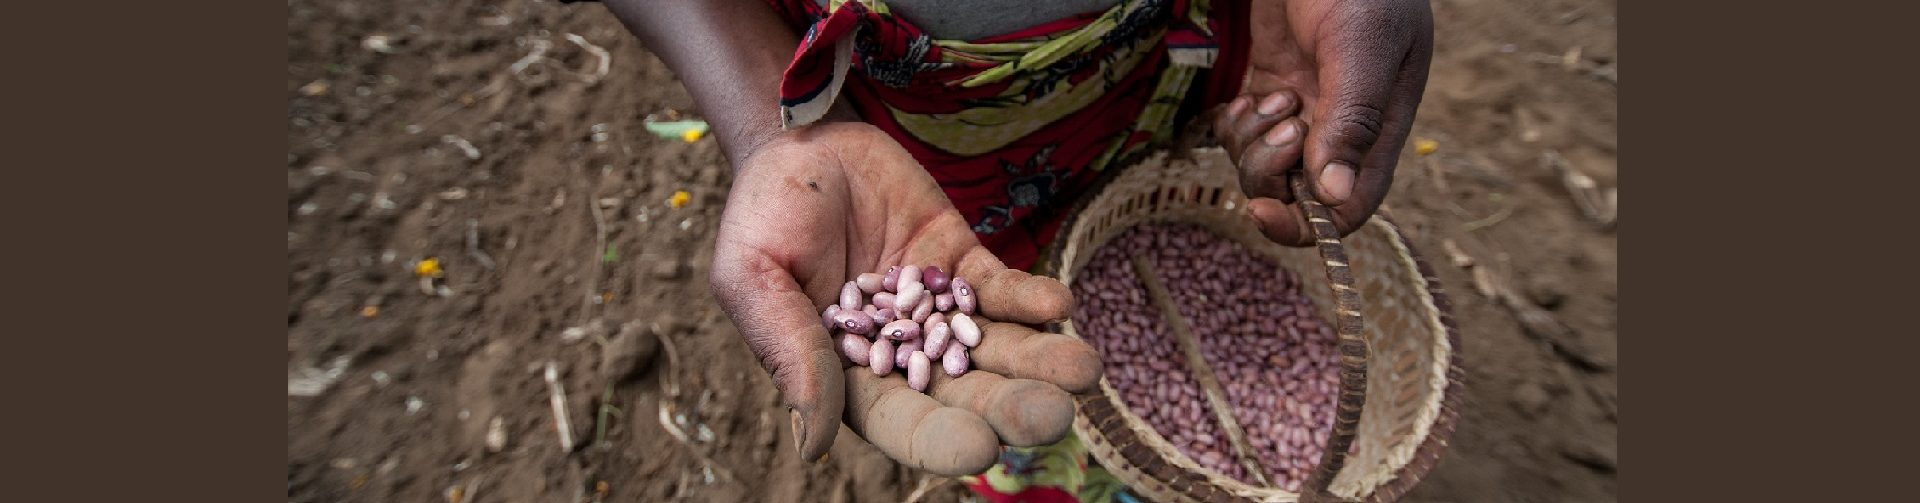 Inclusive seed delivery: Moving from gender diagnoses to testing solutions